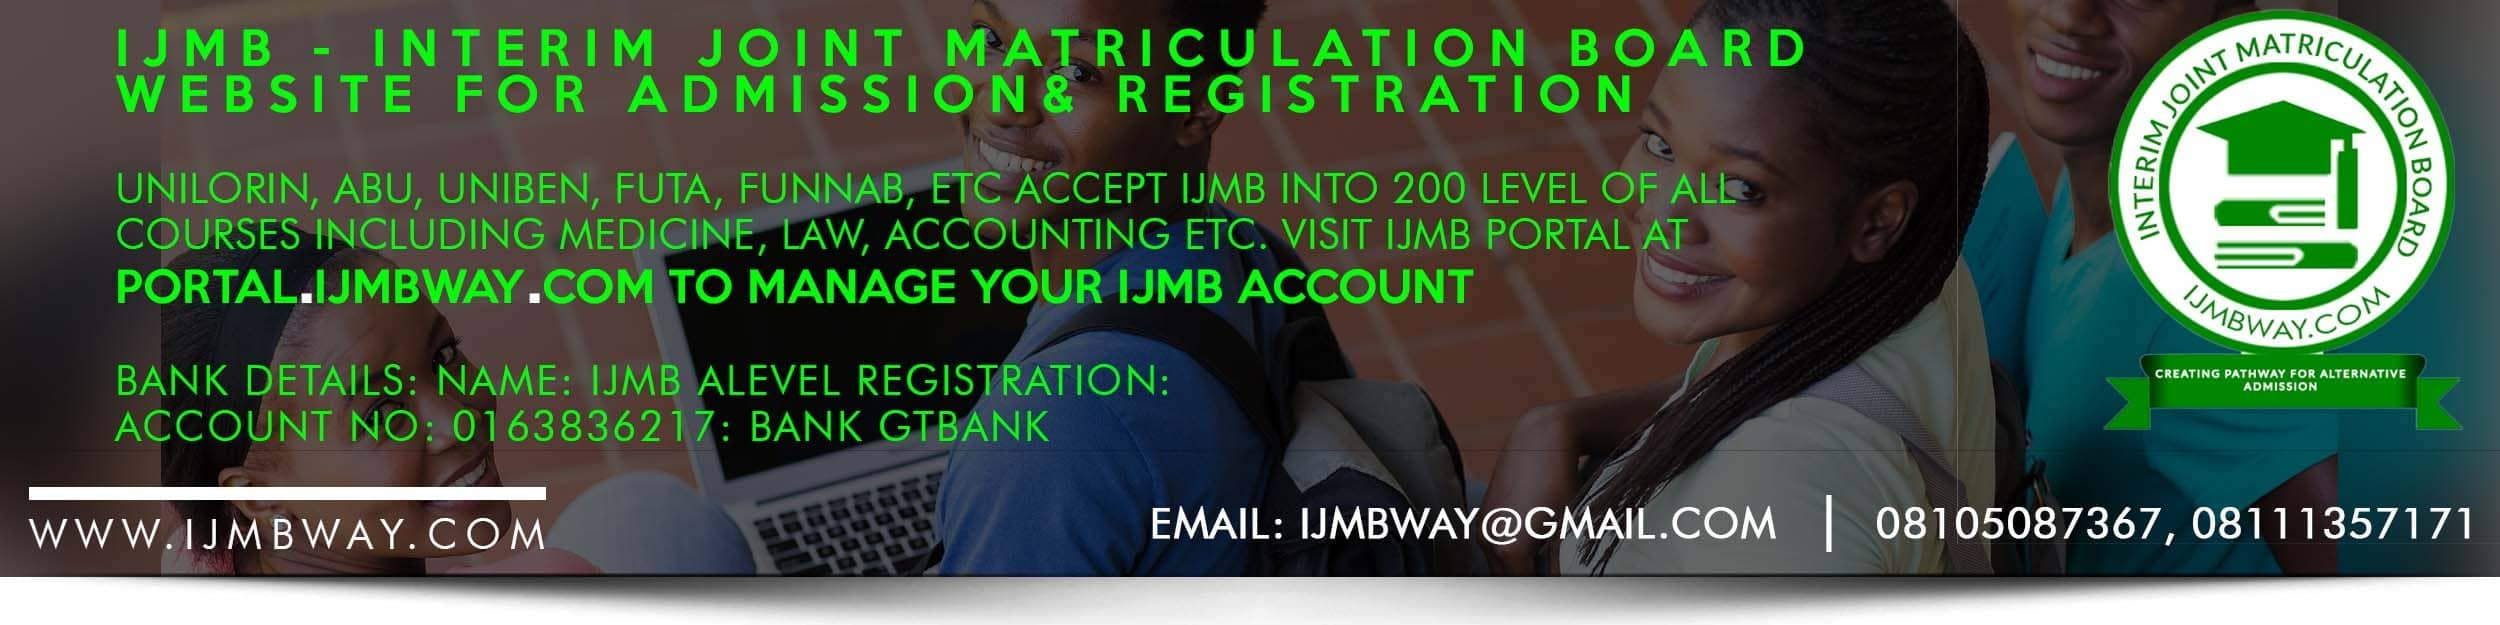 IJMB – Official IJMB Website, IJMB Registration Portal